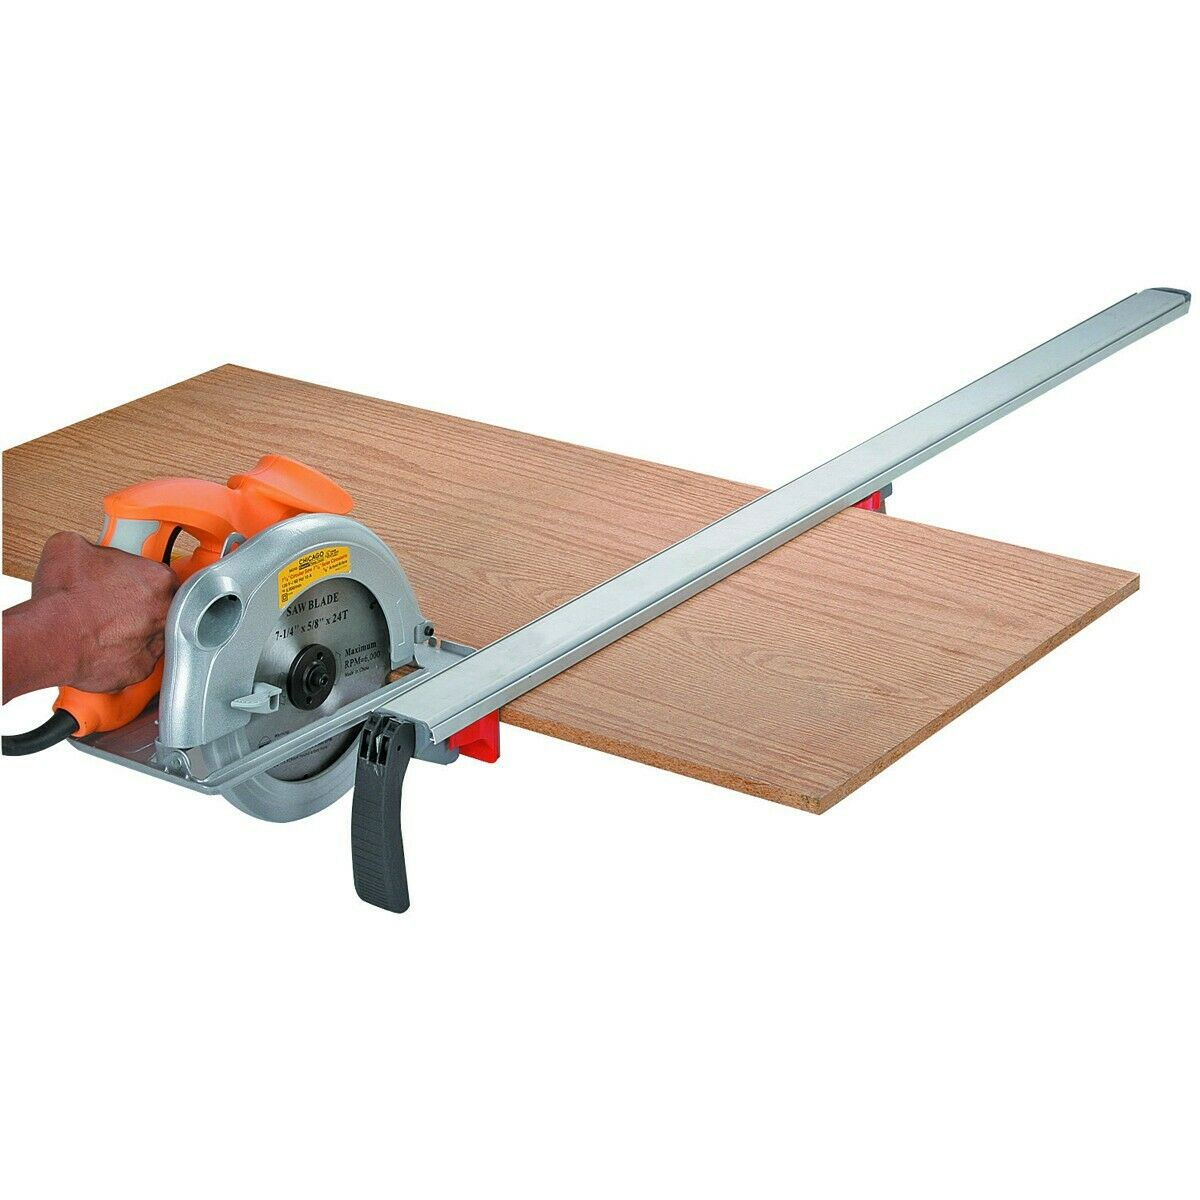 NEW PITTSBURGH® 24 In. Clamp Edge And Saw Guide   FREE SHIP